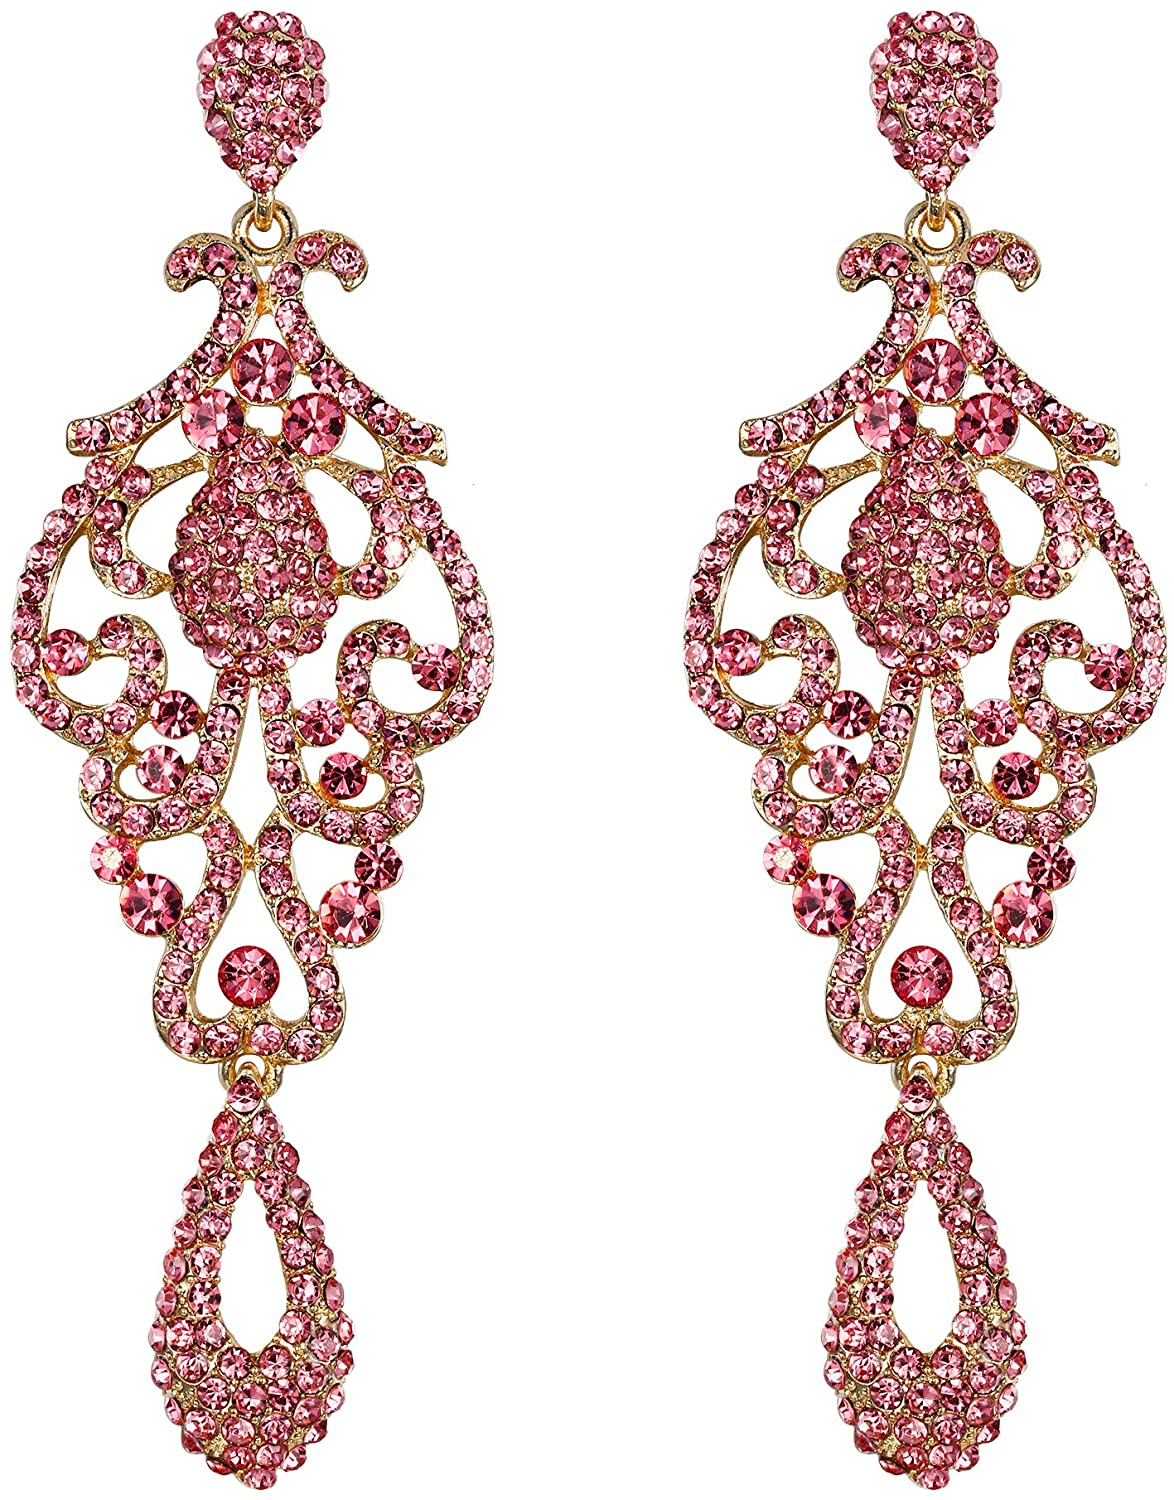 Flyonce Women's Crystal Wedding Vintage Flower Pattern Hollow Drop Chandelier Earrings Pink Gold-Tone